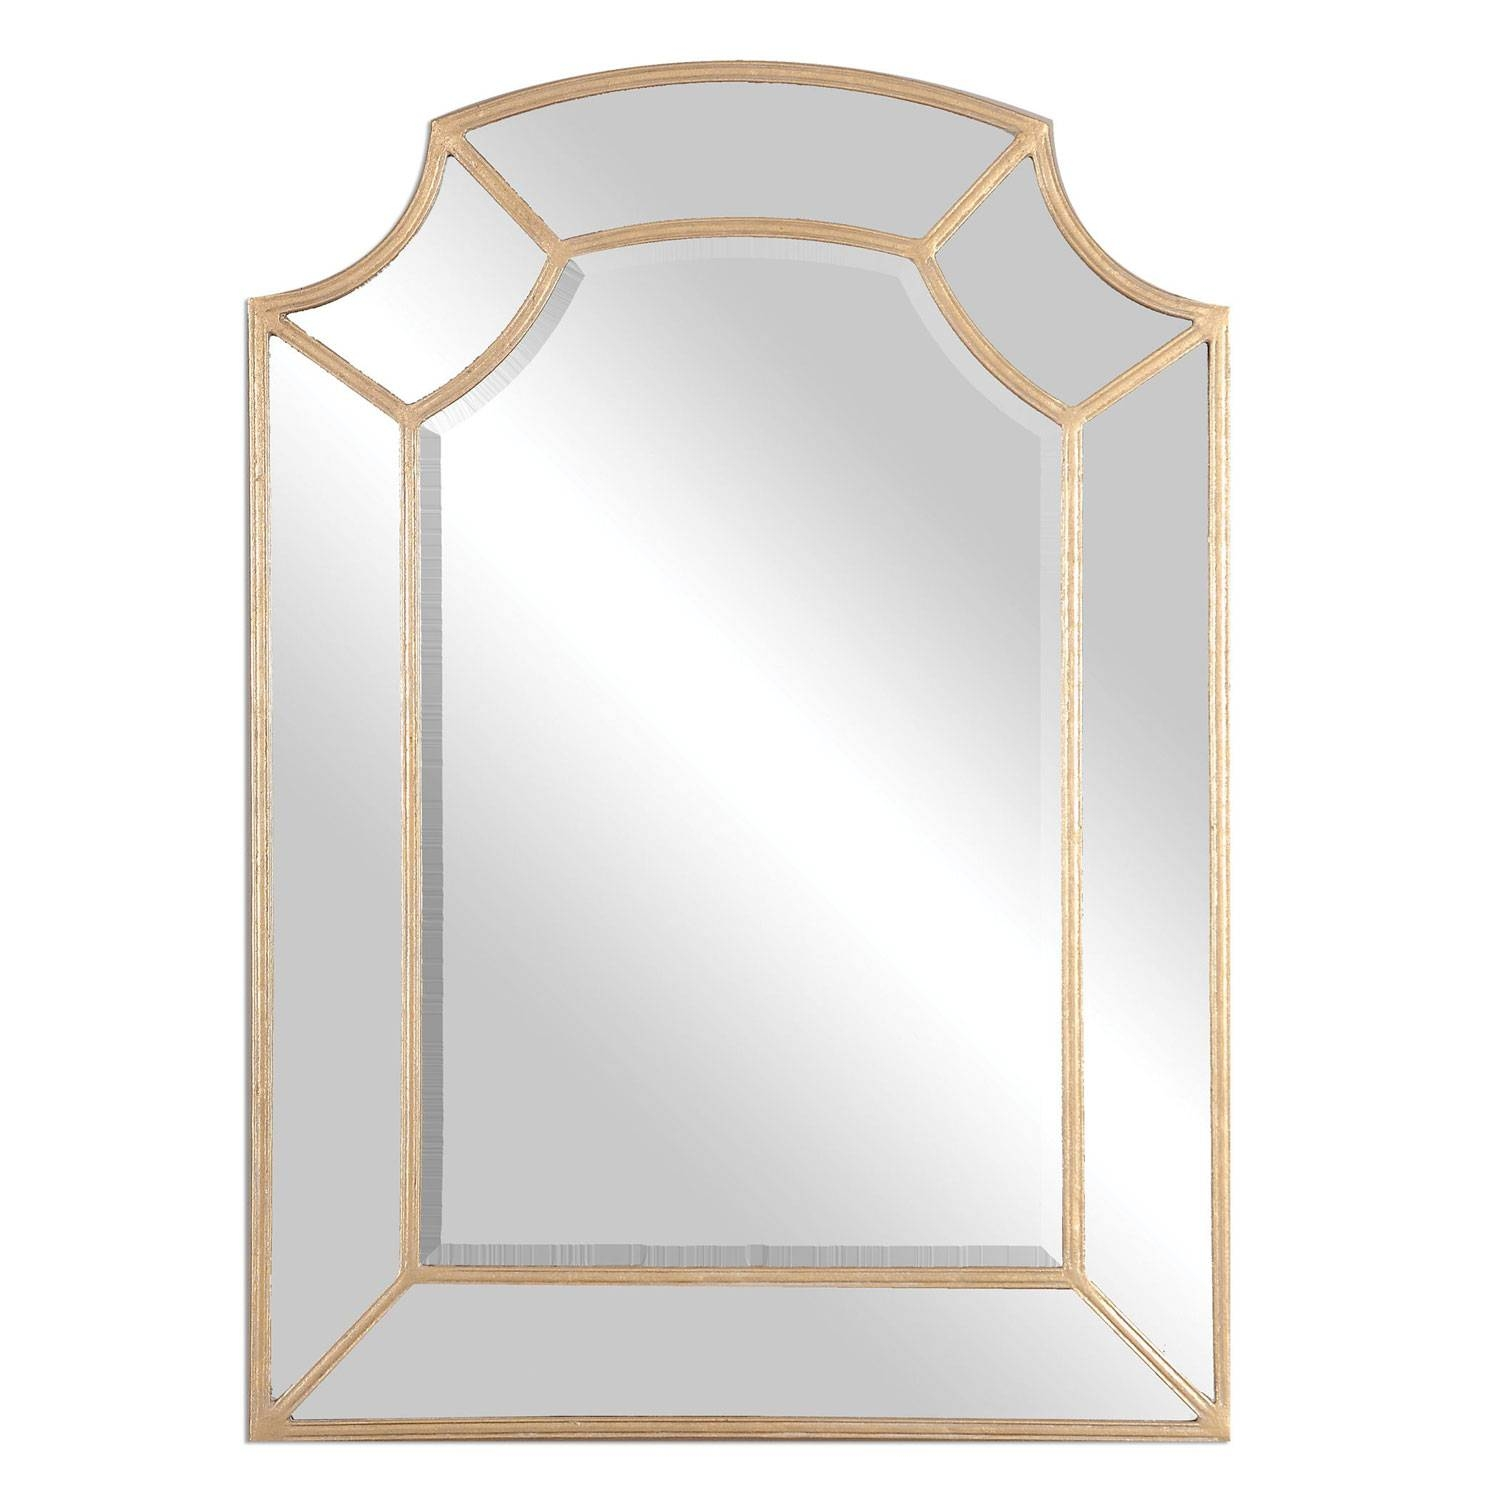 Francoli Gold Arch Mirror Uttermost Wall Mirror Mirrors Home Decor regarding Gold Arch Mirrors (Image 6 of 25)